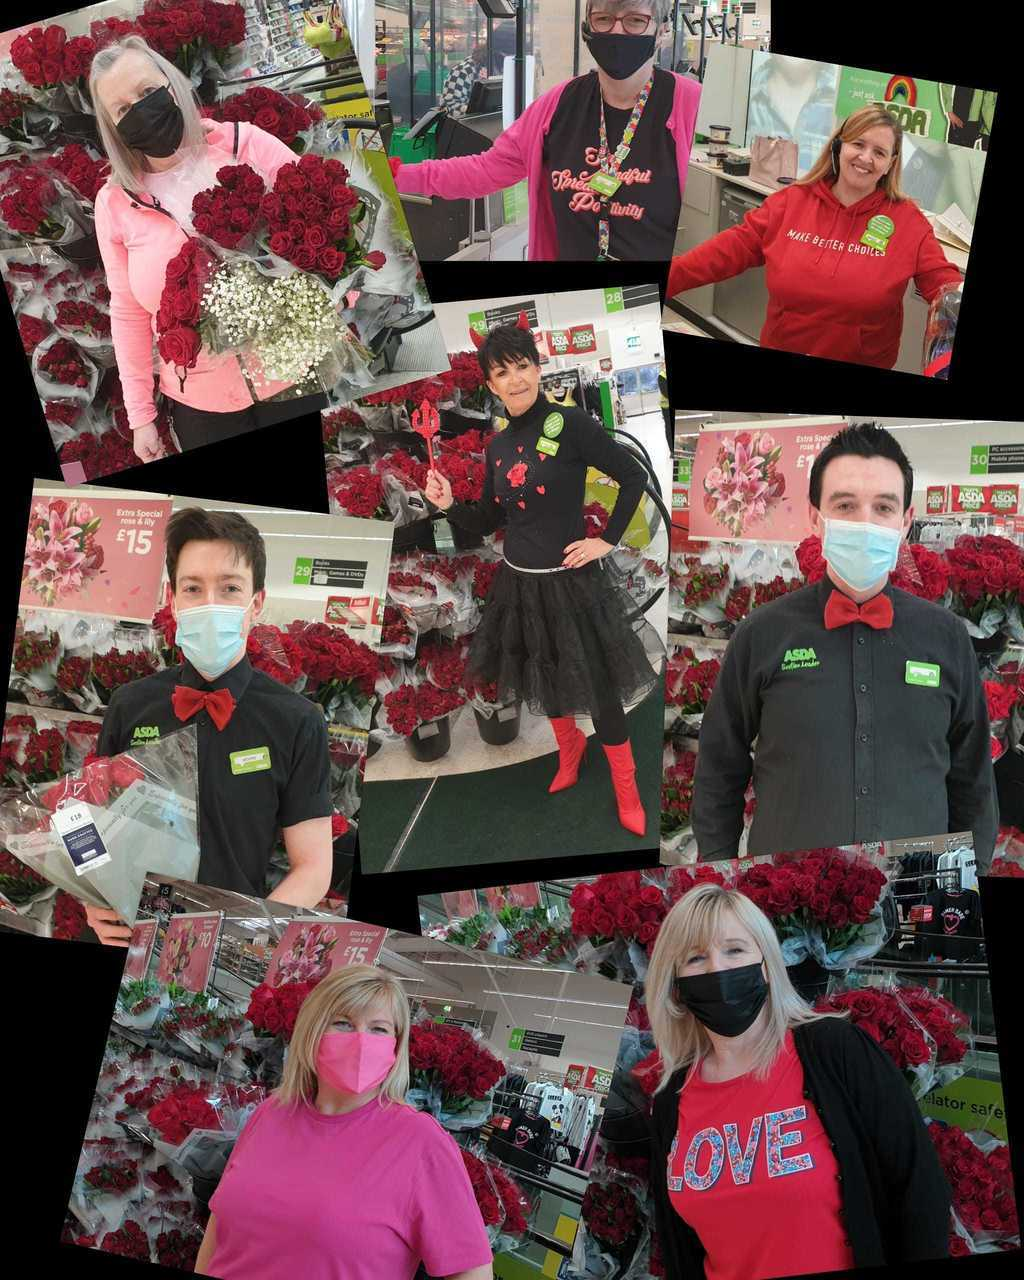 Love is in the air | Asda Toryglen